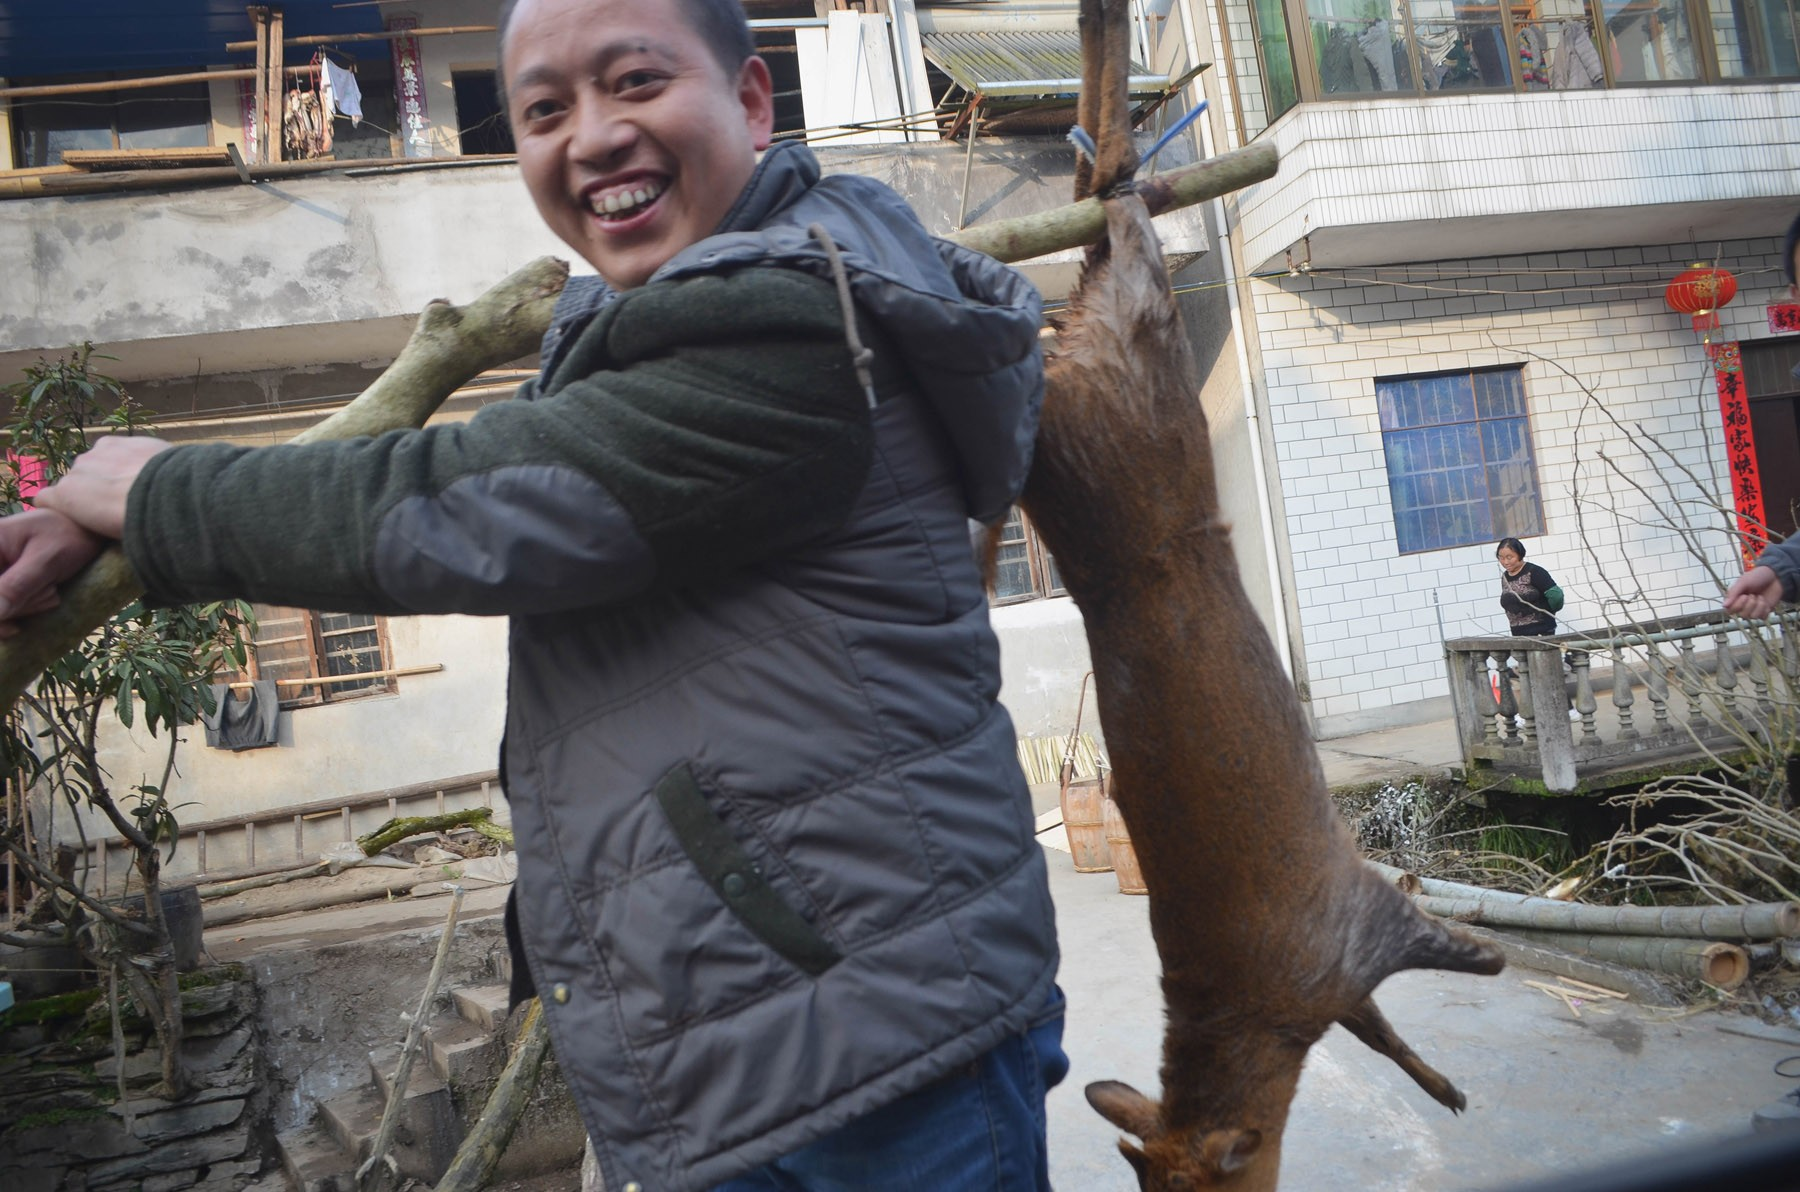 man-with-deer_24602828909_o